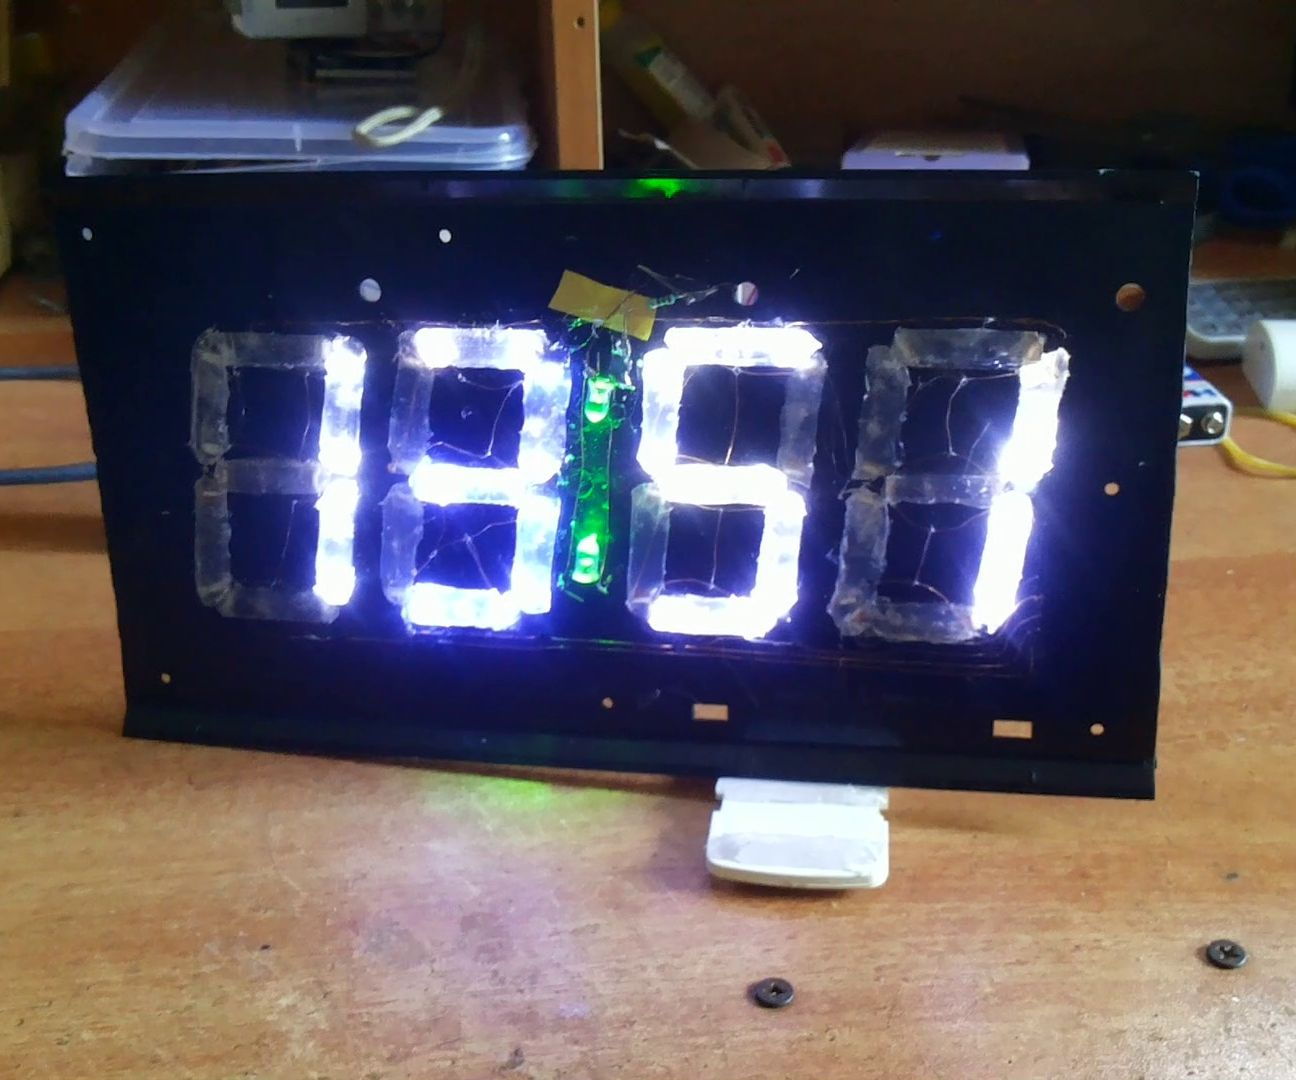 Bluetooth Led Alarm Clock 7 Segment Display From Trash 4 Steps For Beginners Digital With 7segments And Rtc